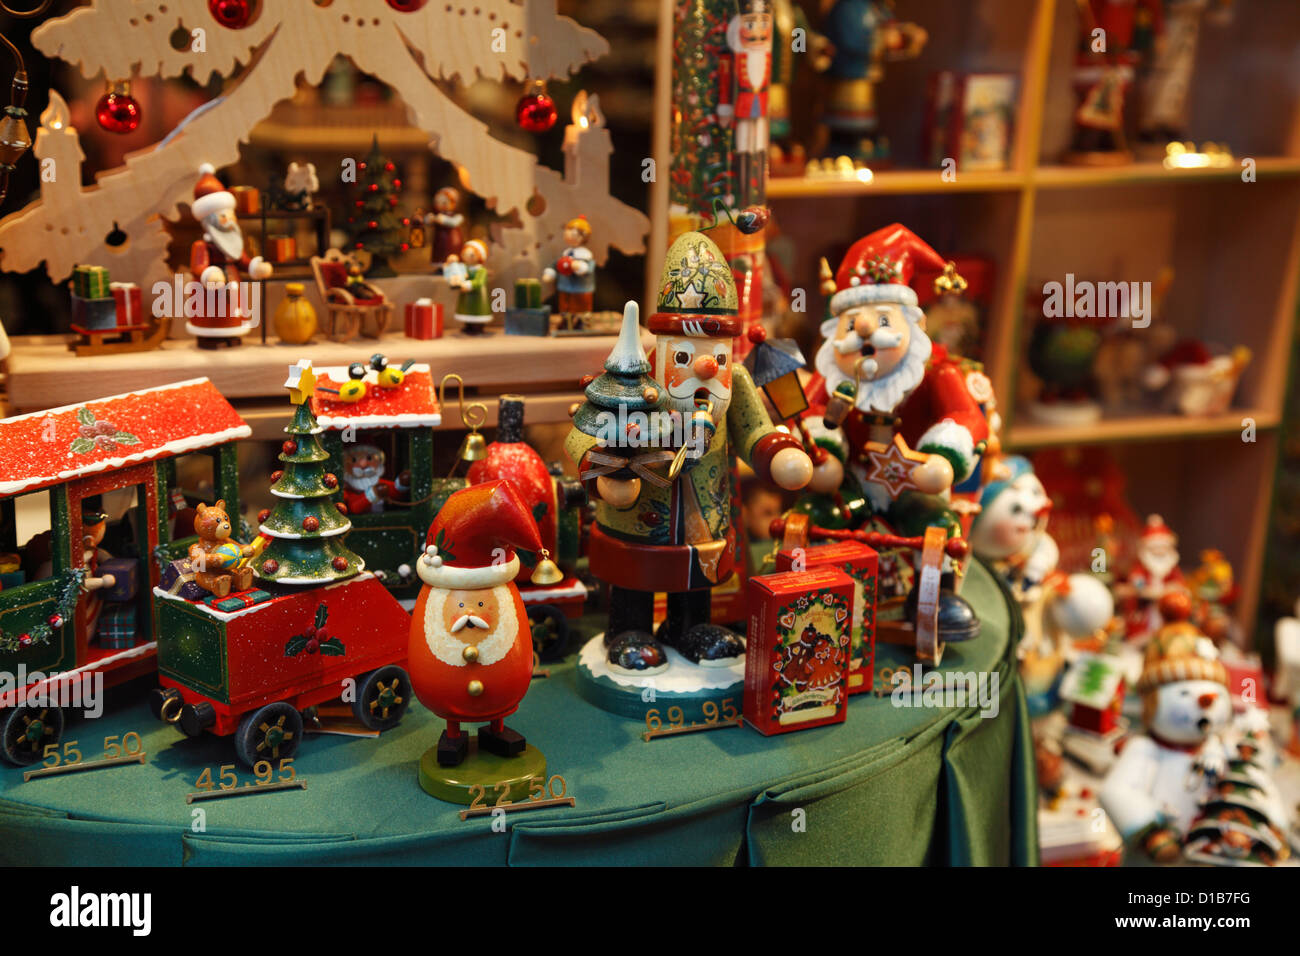 Christmas Toy Store : Christmas toys and decorations in a store window display